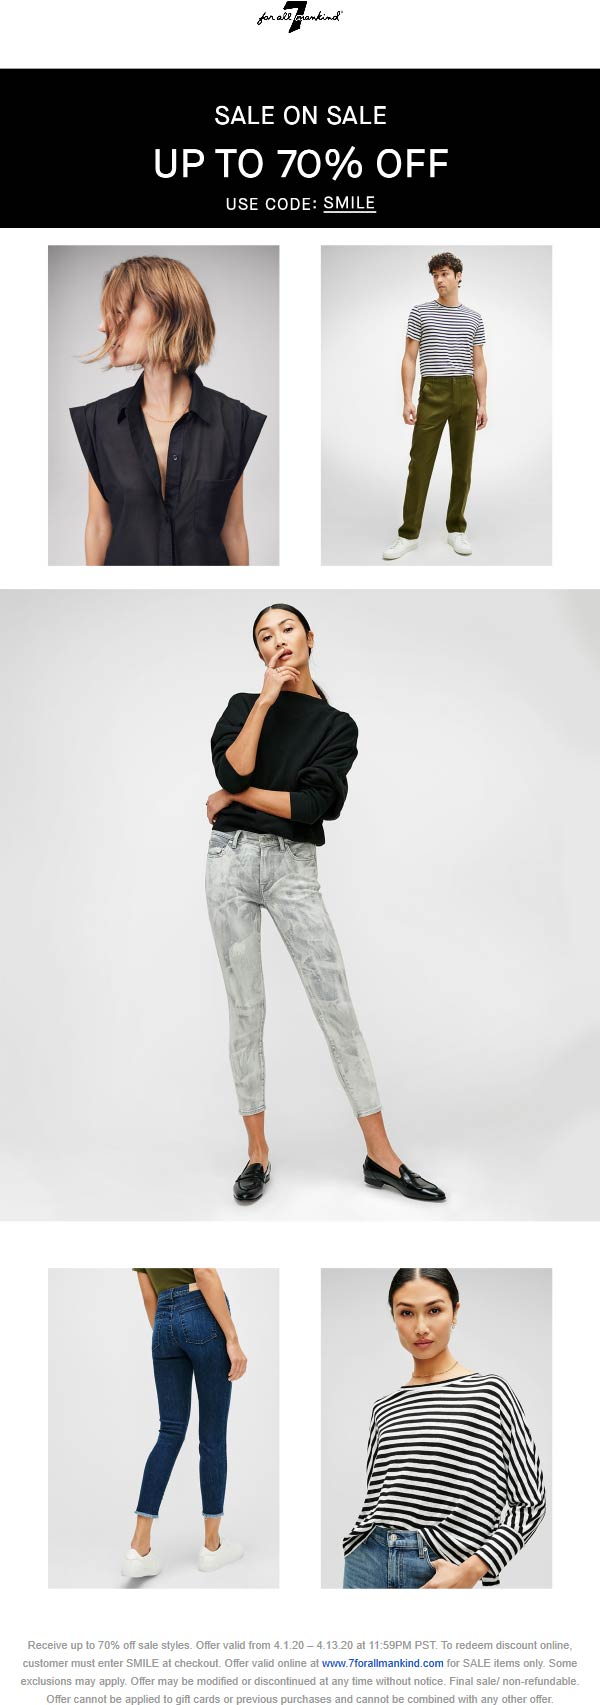 7 for all Mankind coupons & promo code for [October 2020]